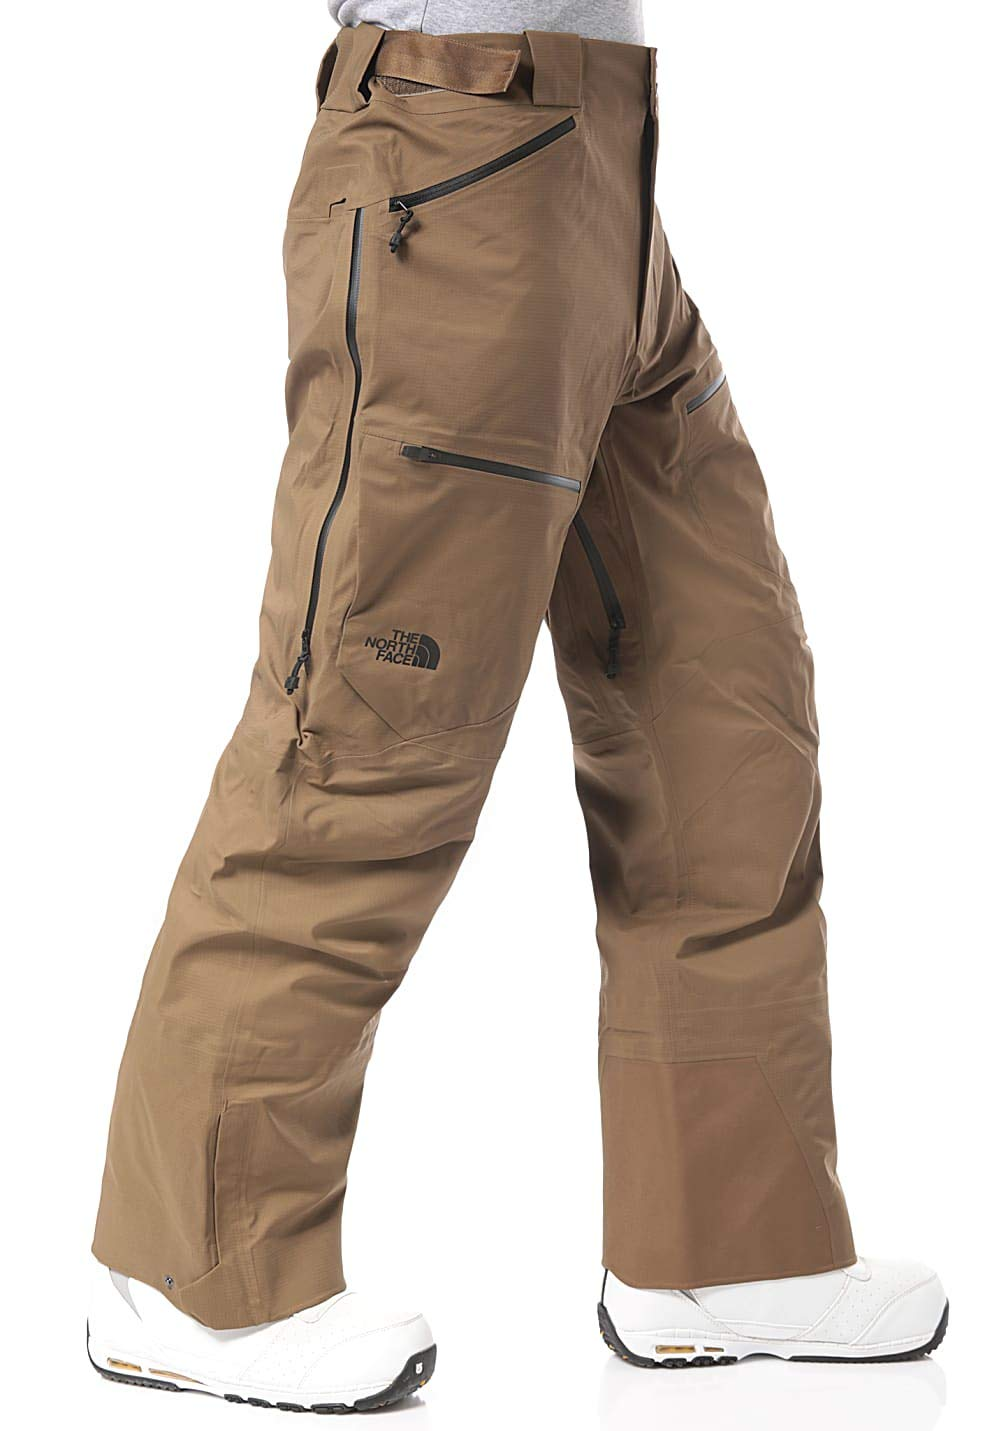 8bbe62c2f THE NORTH FACE Purist: Amazon.co.uk: Sports & Outdoors